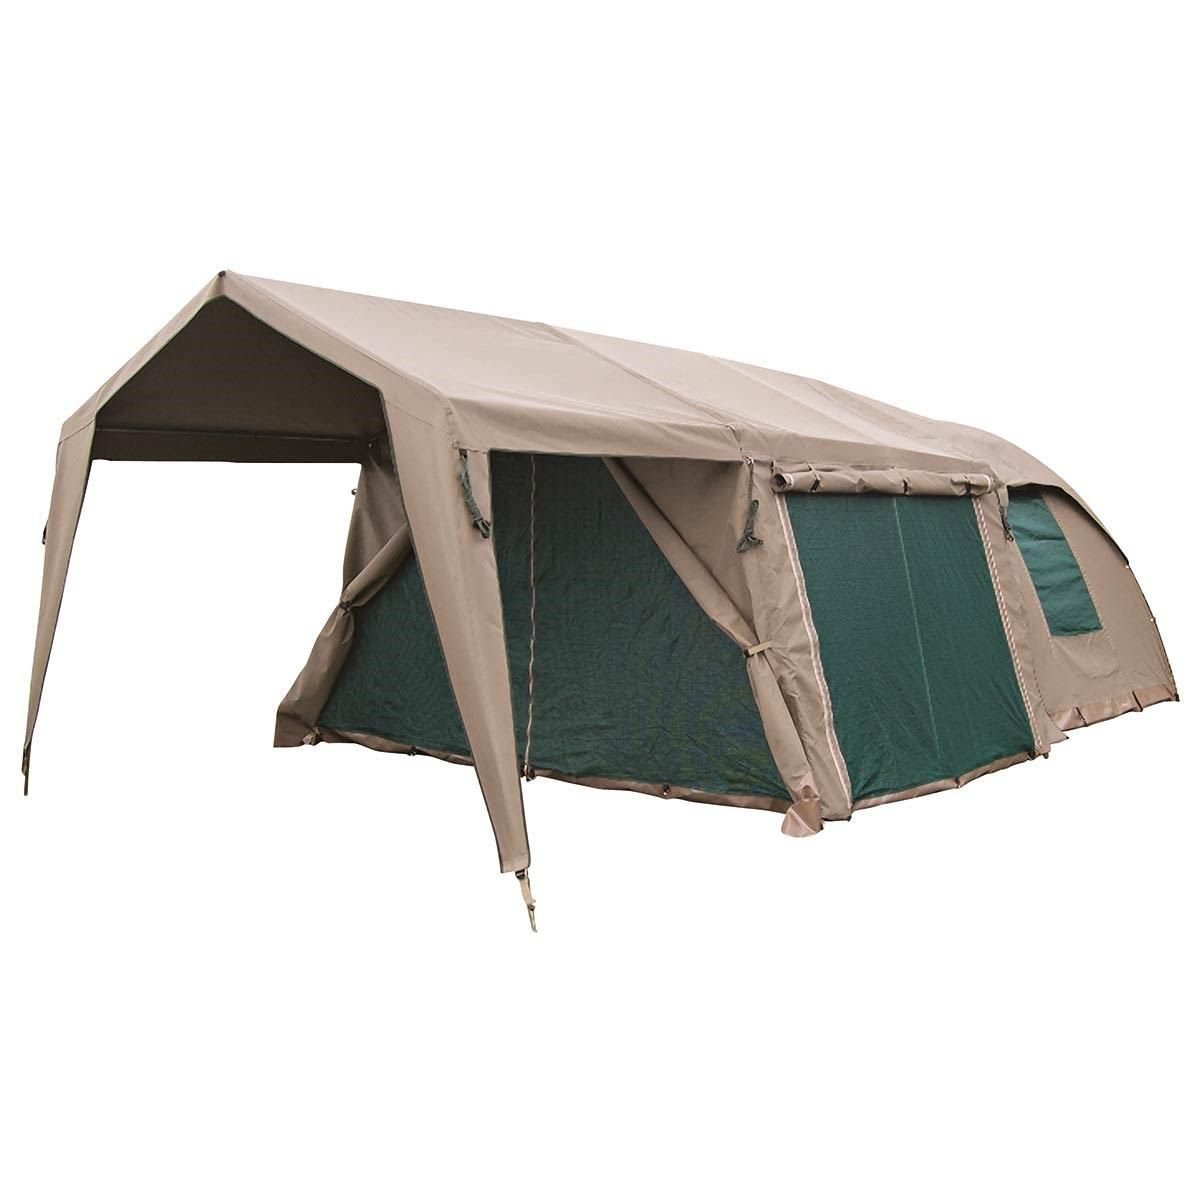 Superb Campmor Safari Senior Bush Combo 2 Canvas 4 Person Dome Tent With Large Extension And Verandah Download Free Architecture Designs Itiscsunscenecom